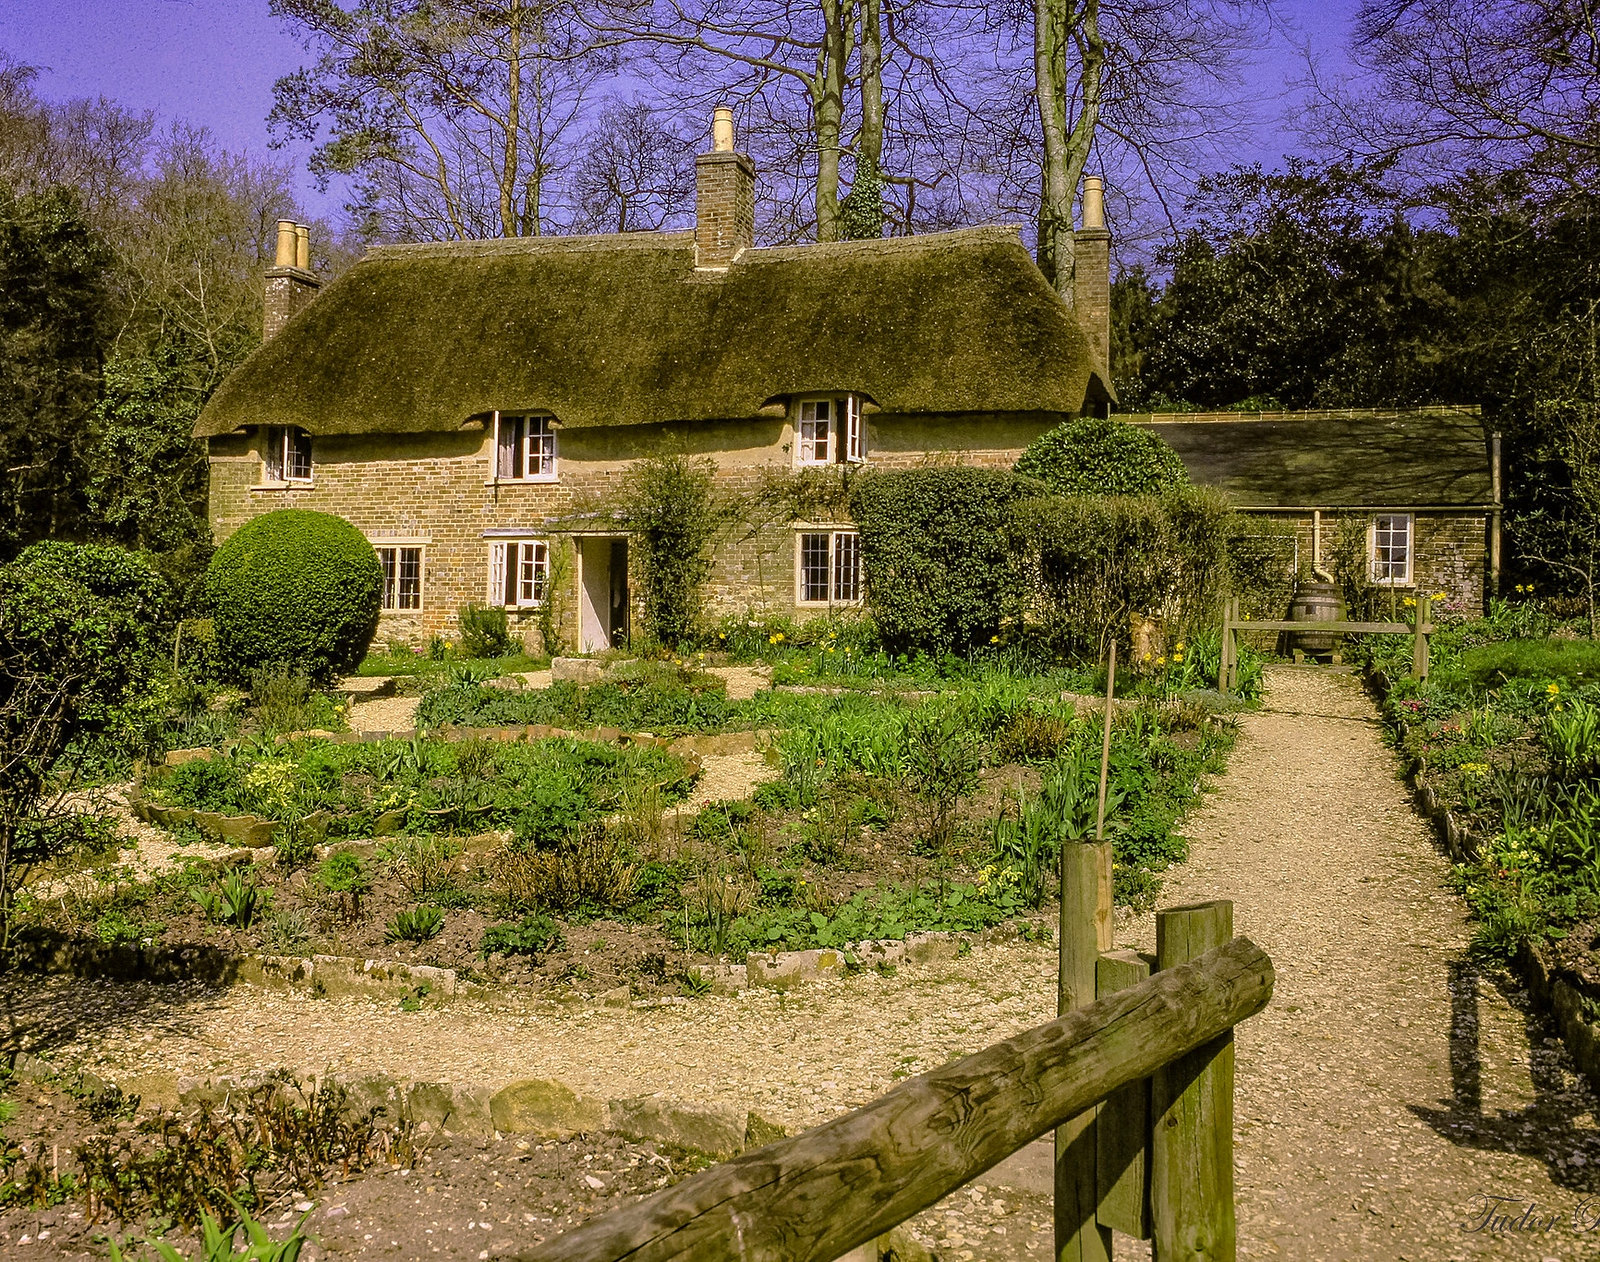 Thomas Hardy's Cottage, Dorchester, Dorset. Credit Tudor Barker, flickr